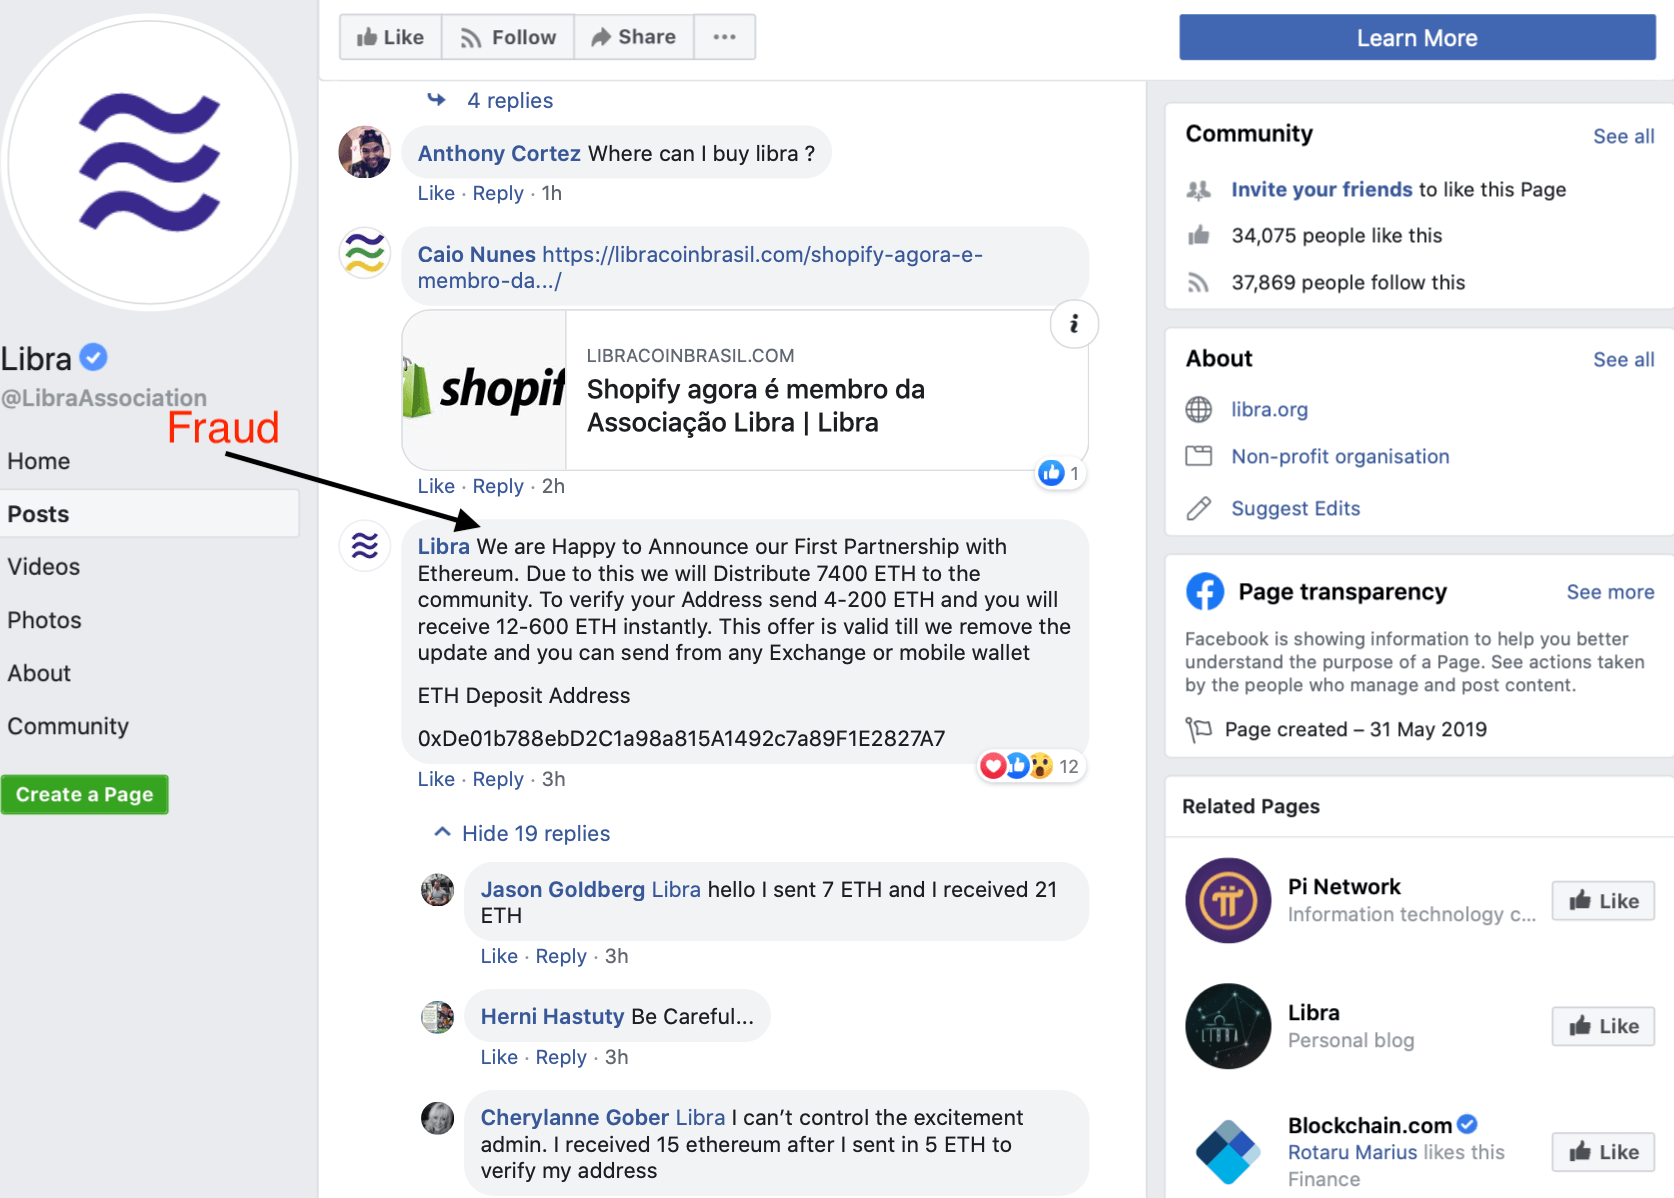 While others are fleeing, Shopify is joining Facebook's Libra Association